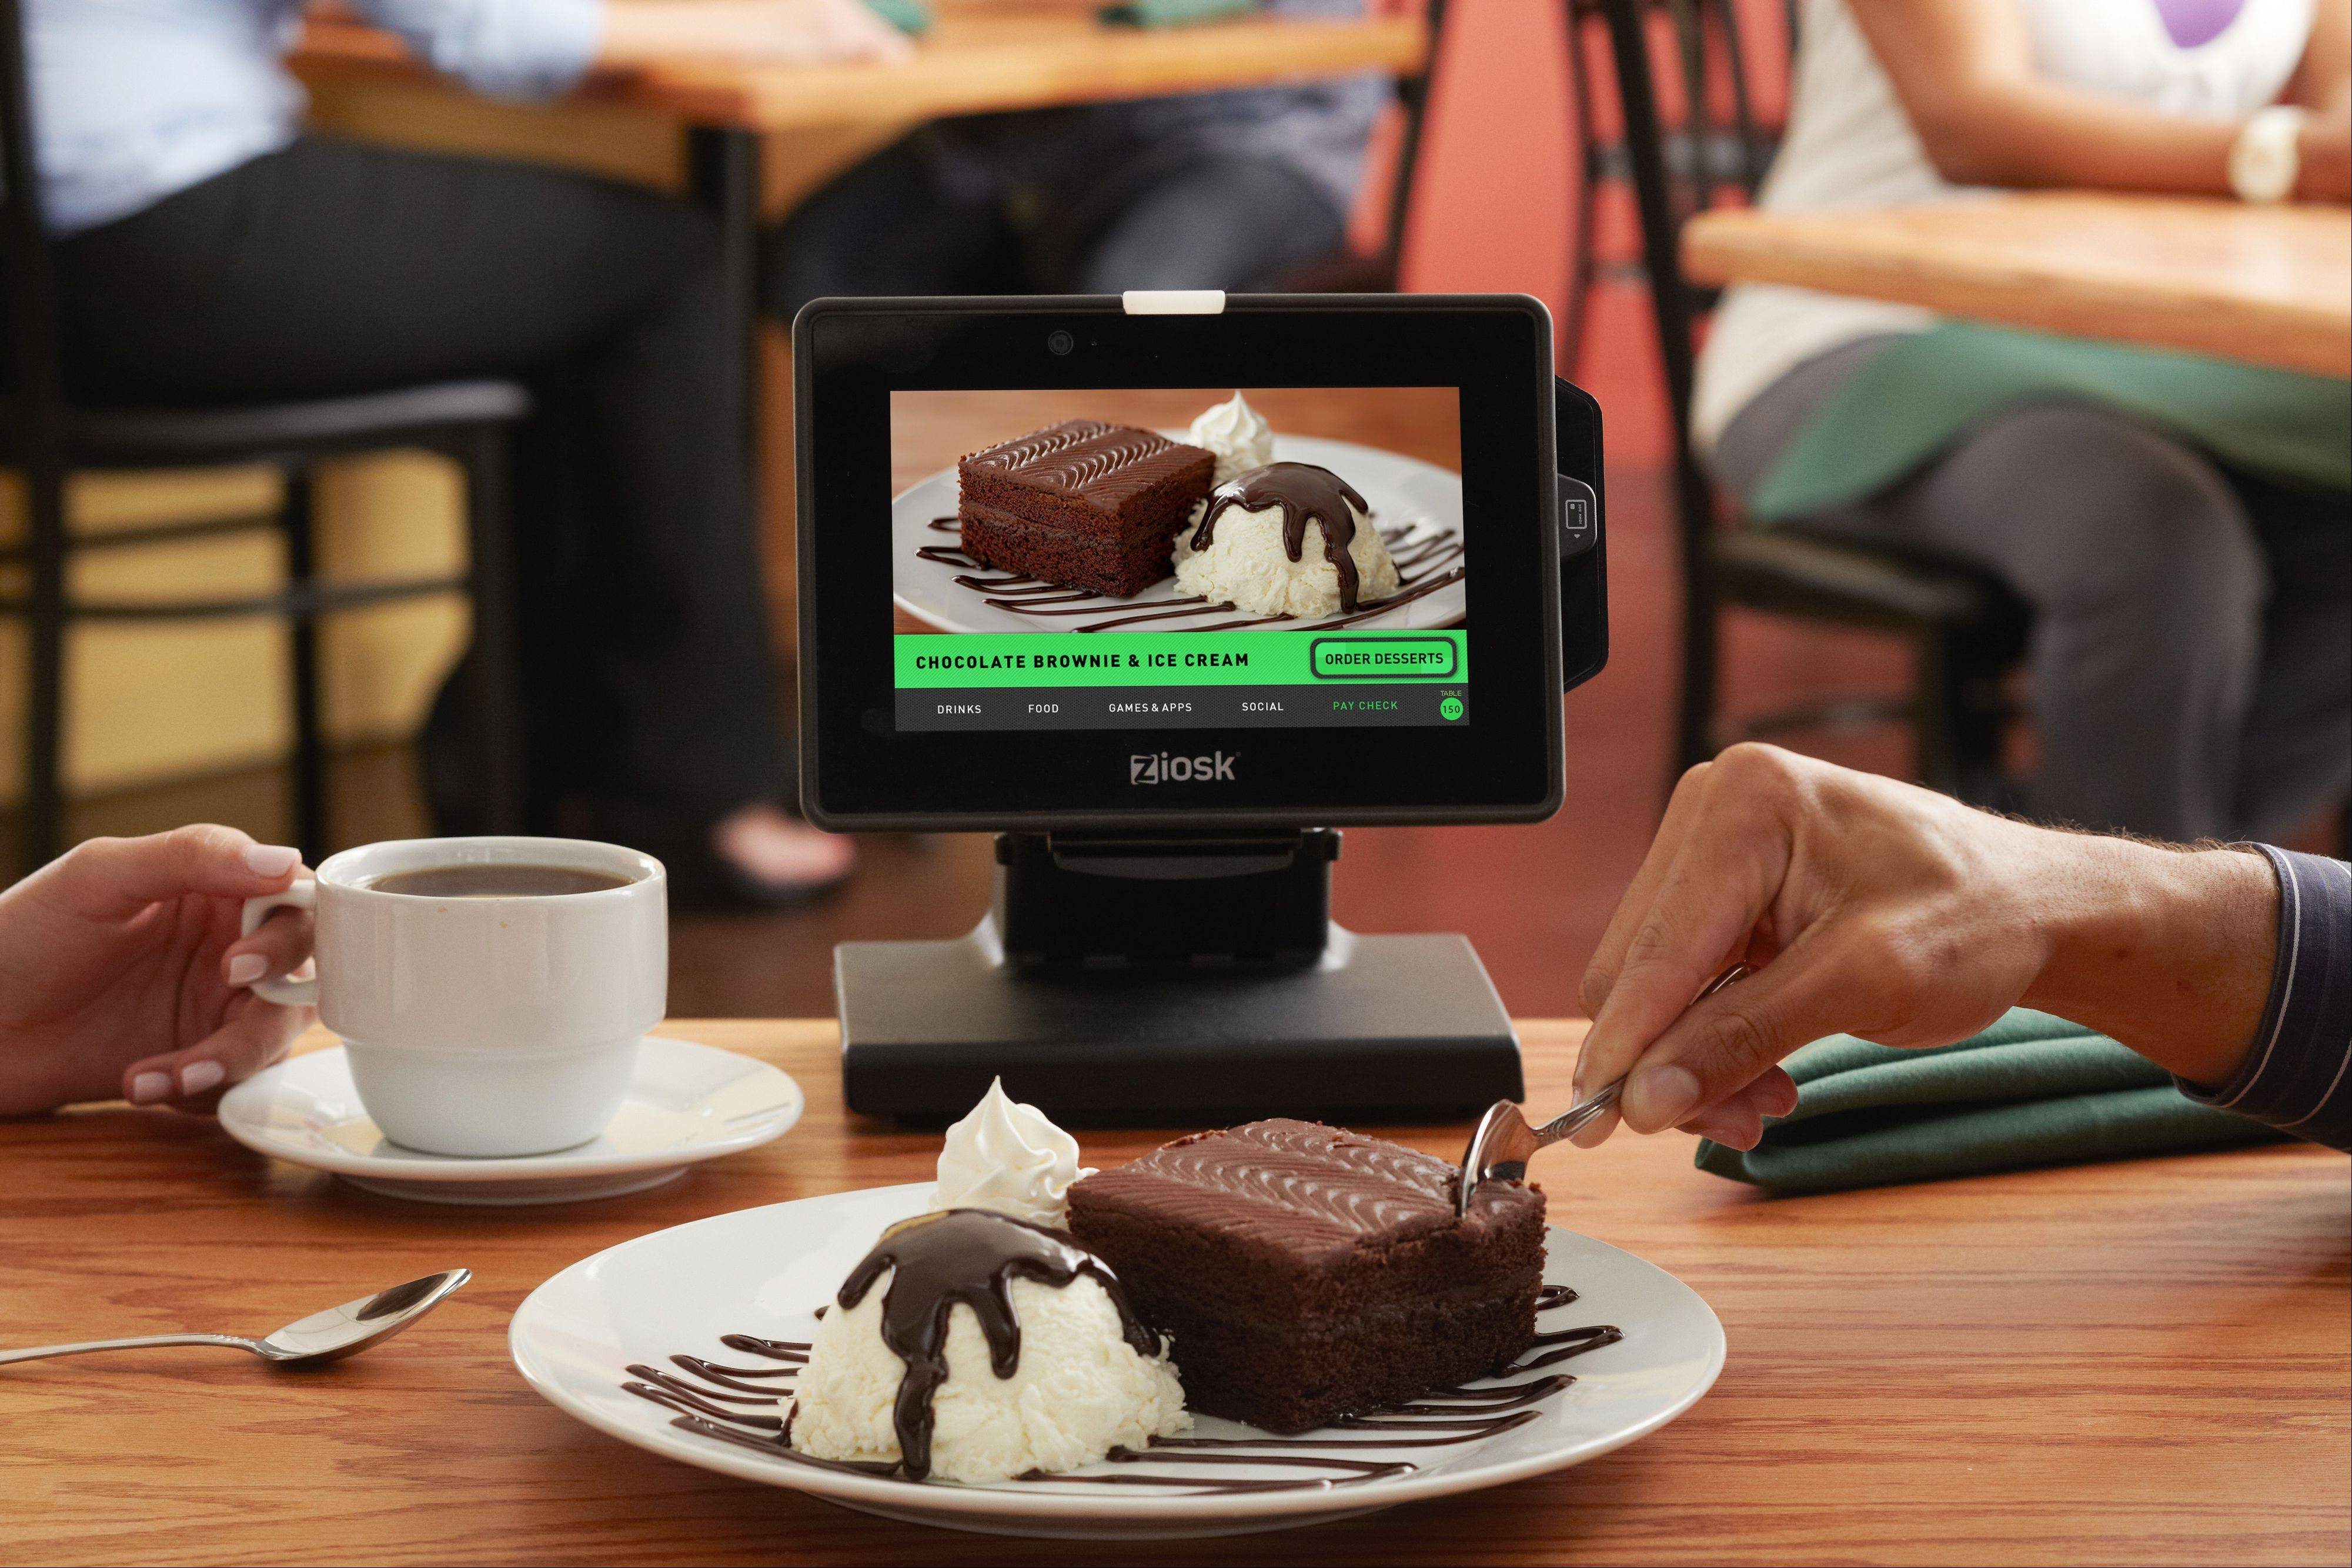 COURTESY OF ZIOSK Dallas, Texas-based Ziosk has updated its tabletop tablet where restaurant customers can order food, pay their bill and even get entertainment while waiting for their meal. Chili's restaurants in the suburbs now offer the upgraded tablet with a touch screen and more features.